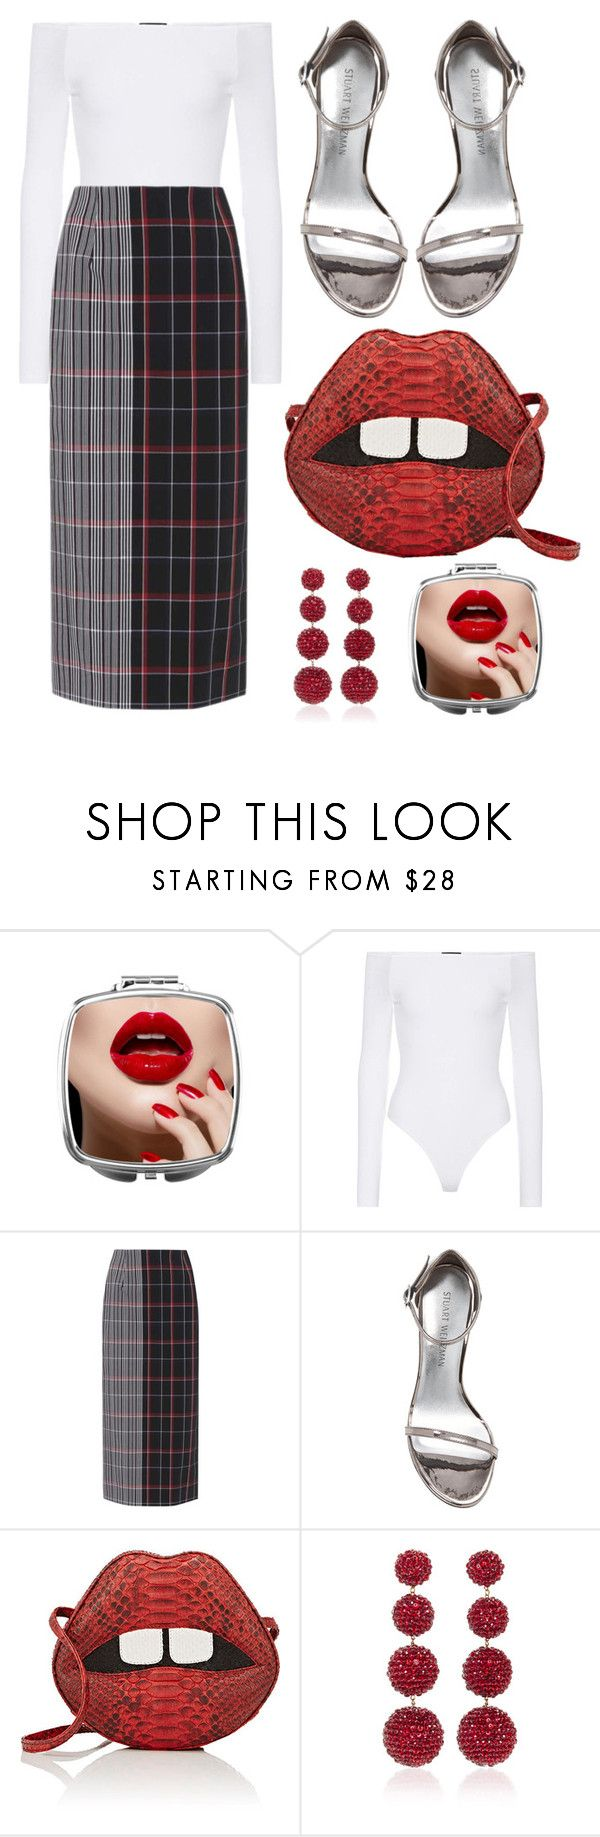 """Untitled #9311"" by cherieaustin on Polyvore featuring ATM by Anthony Thomas Melillo, Victoria Beckham, Stuart Weitzman, Gelareh Mizrahi and Rebecca de Ravenel"